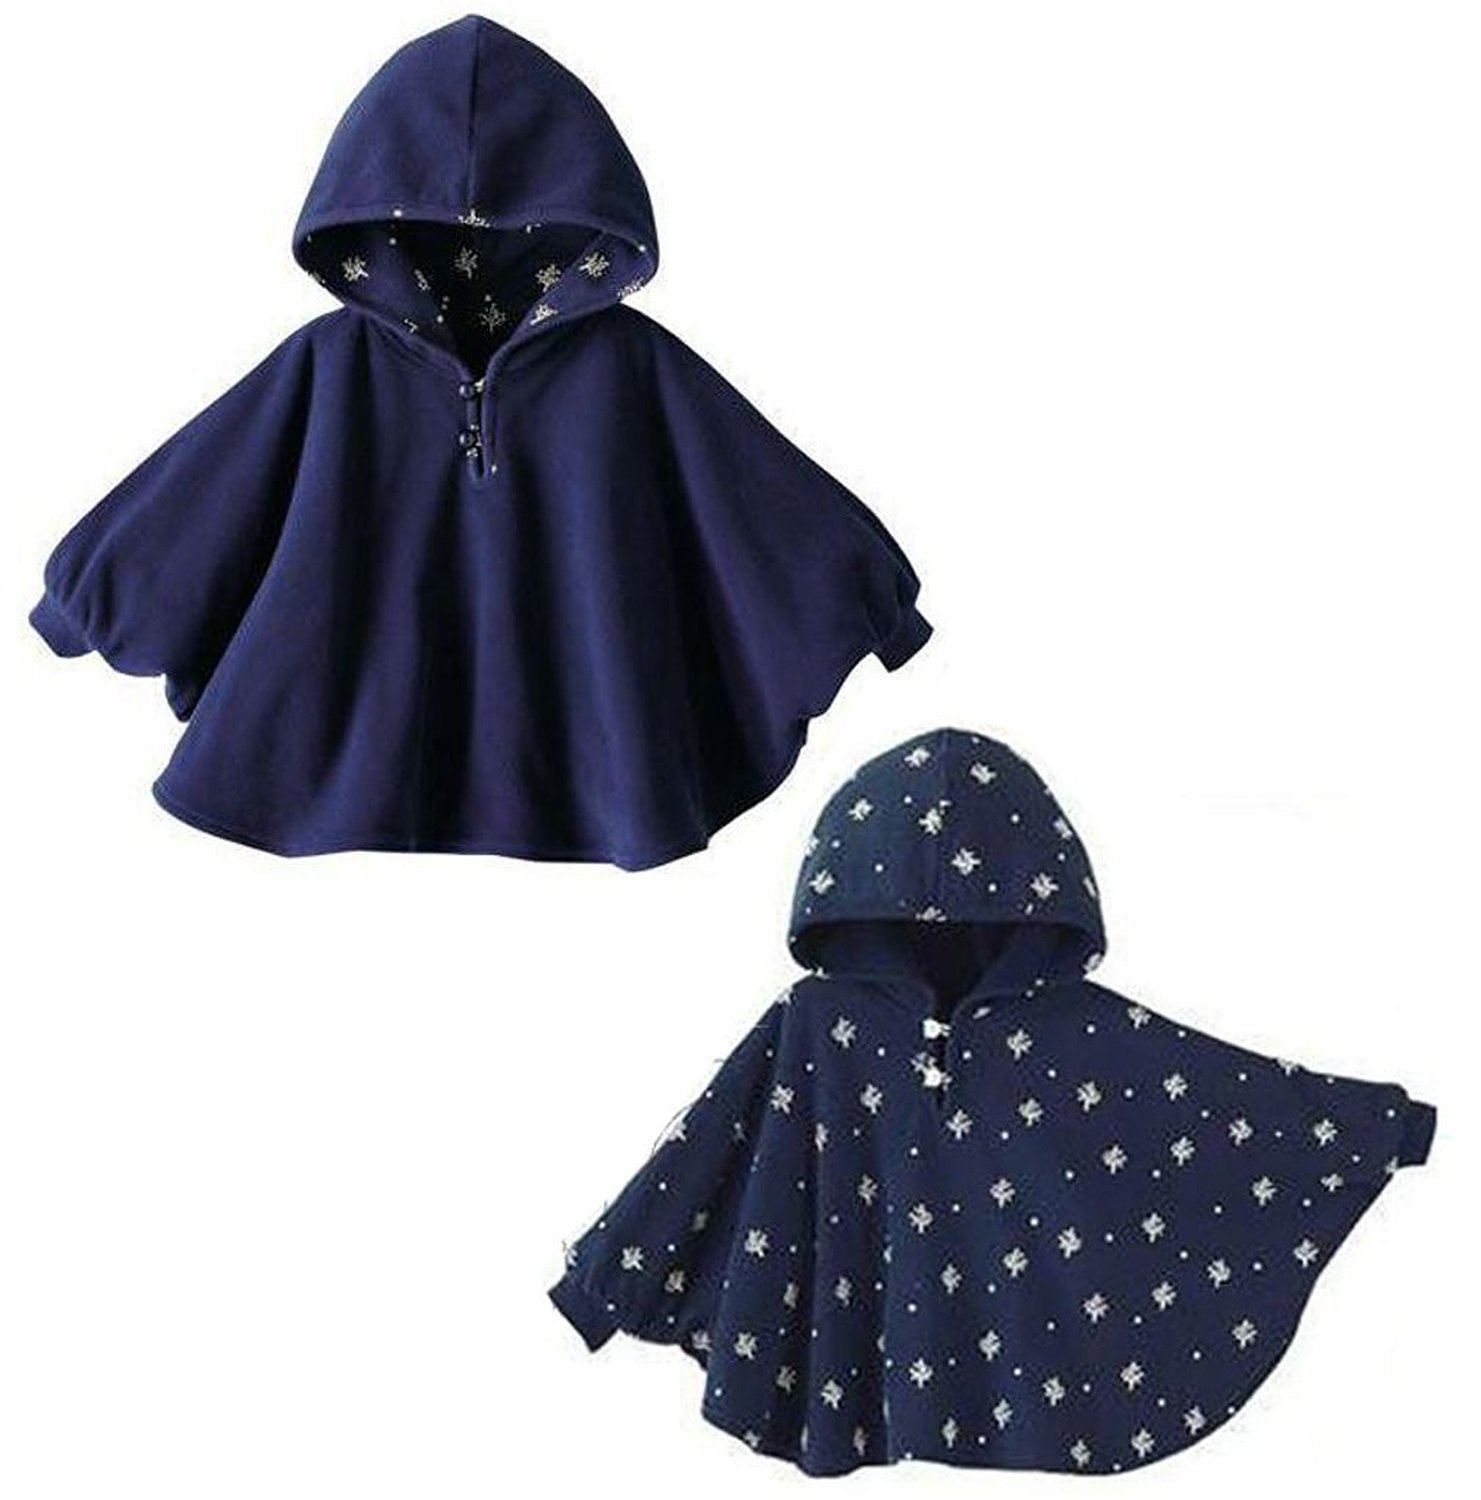 Toddler Cape Pattern Interesting Decorating Ideas